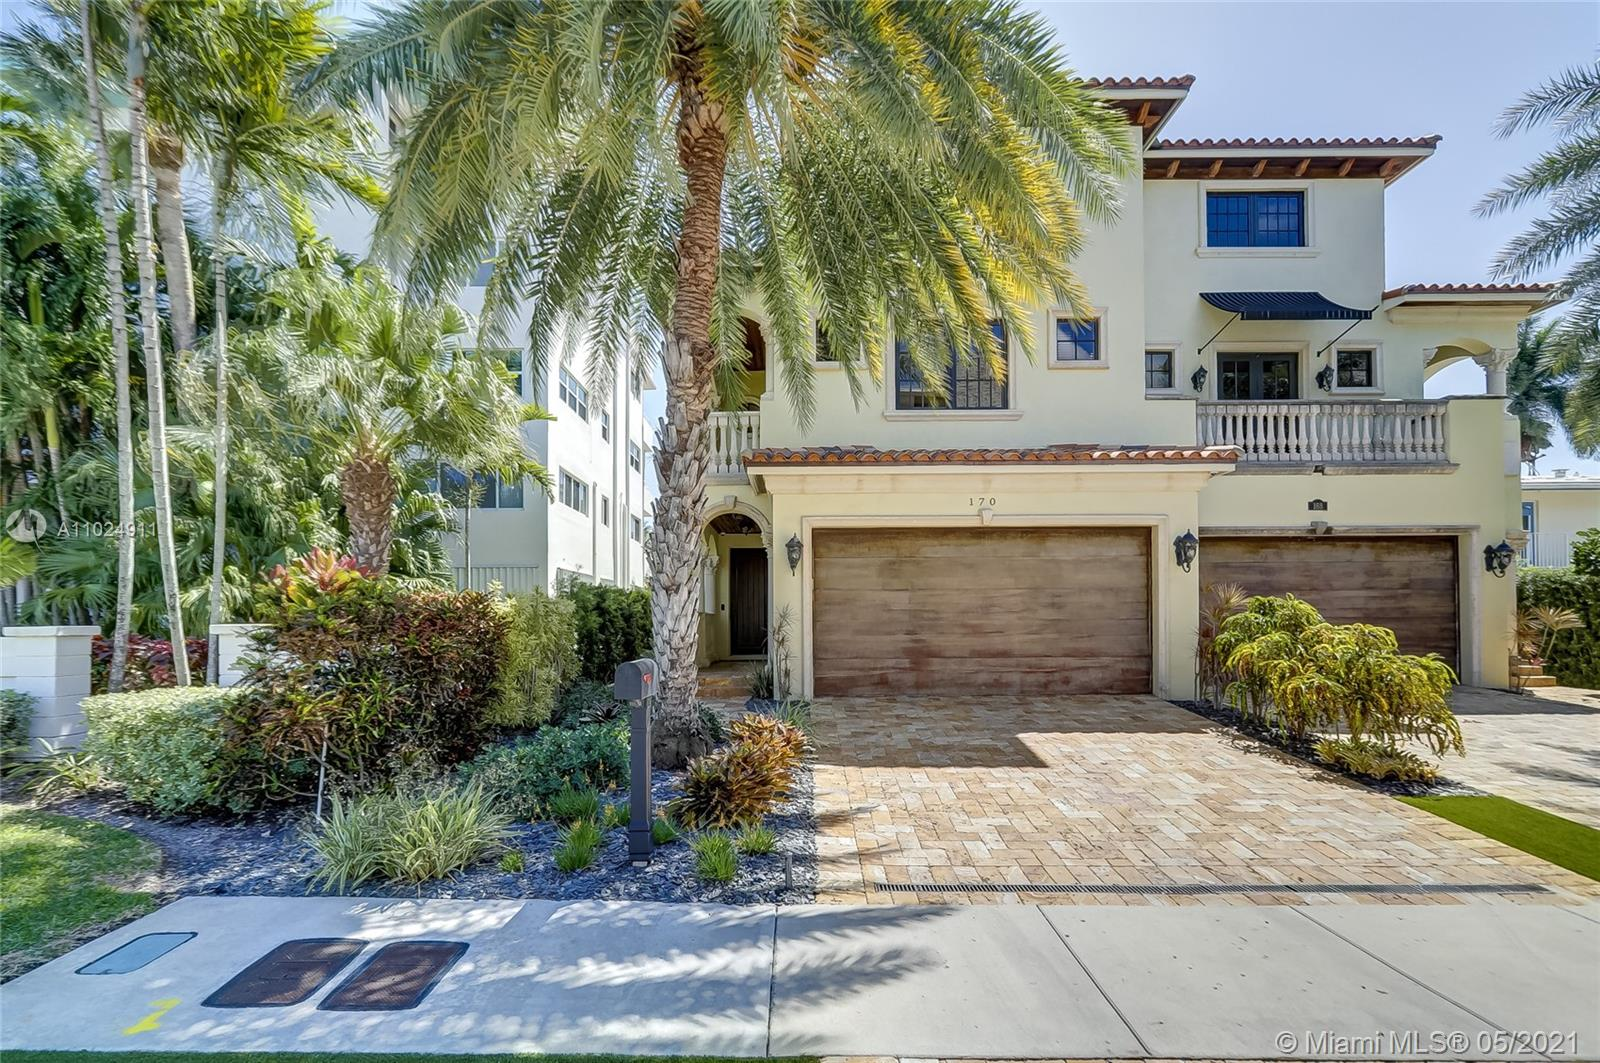 Gorgeous 3 Story townhome with stunning rooftop terrace with views of downtown Fort Lauderdale. This 3 bed 3 bath beautiful home with marble floors, granite countertops and high end appliances includes a private elevator, pool and deeded 40 FT dock.